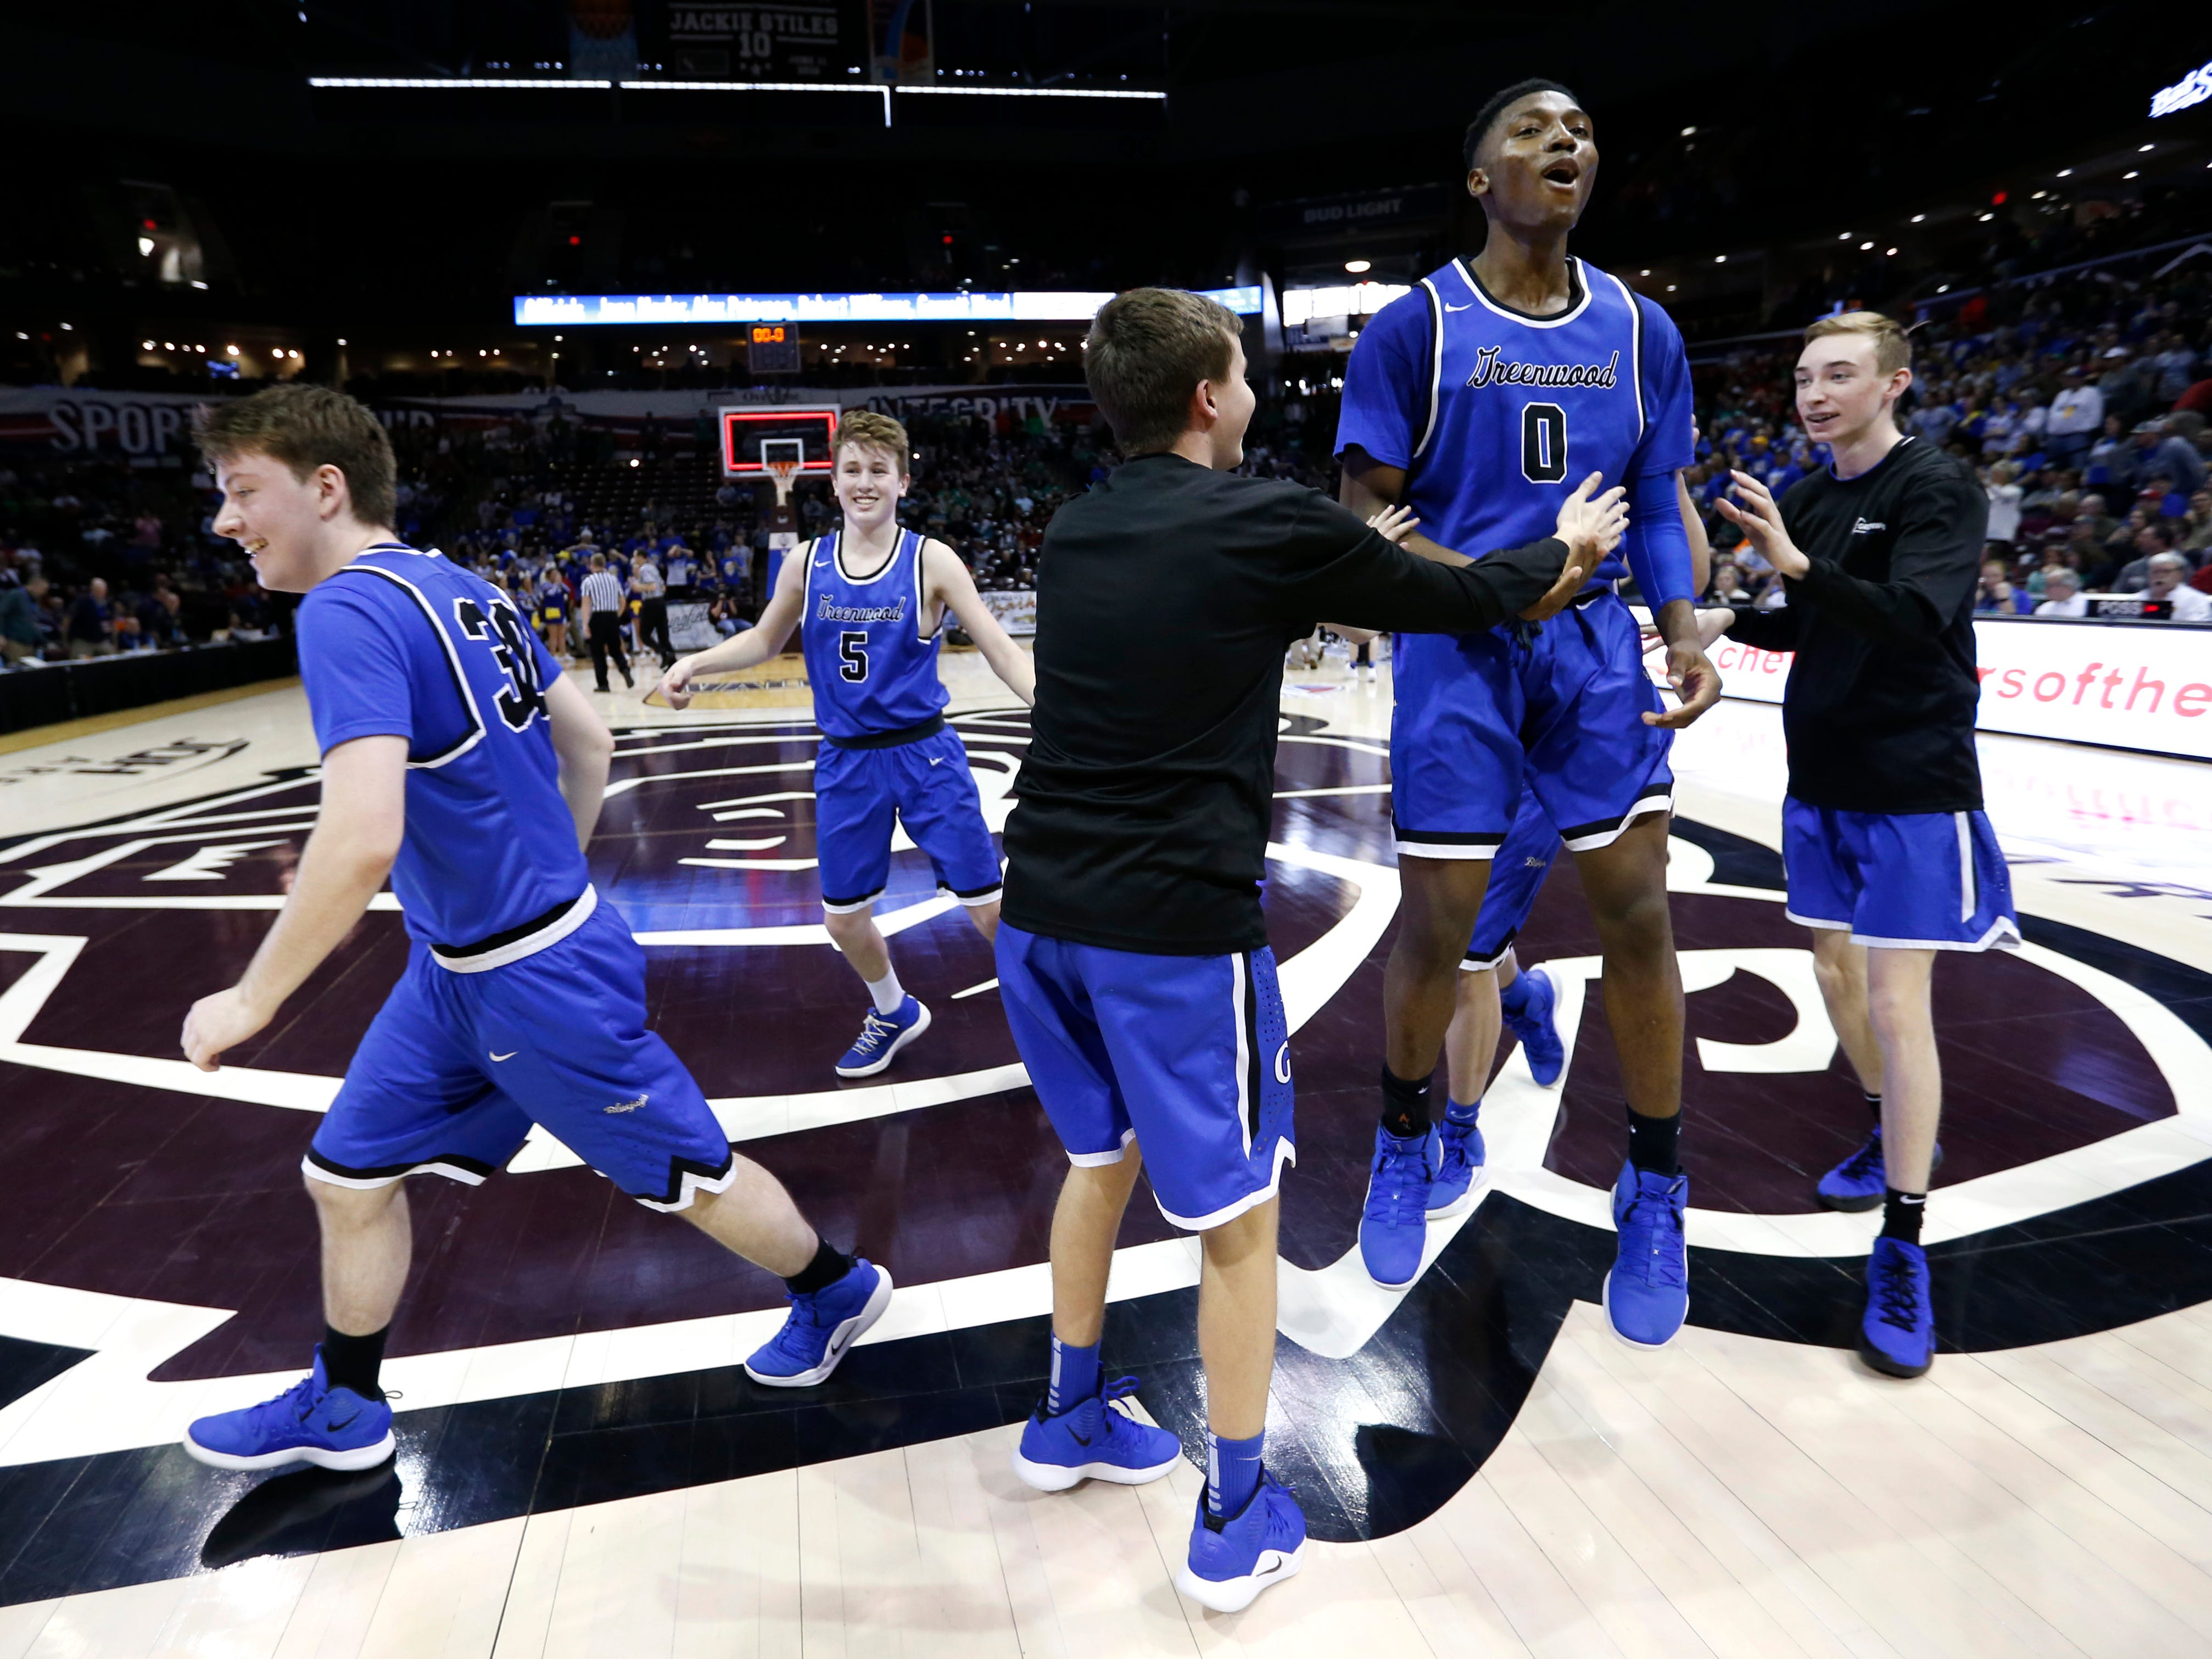 The Greenwood Blue Jays storm the court in celebration after beating the Oran Eagles 55-54 to win the Class 2 state championship game at JQH Arena on Saturday, March 9, 2019.